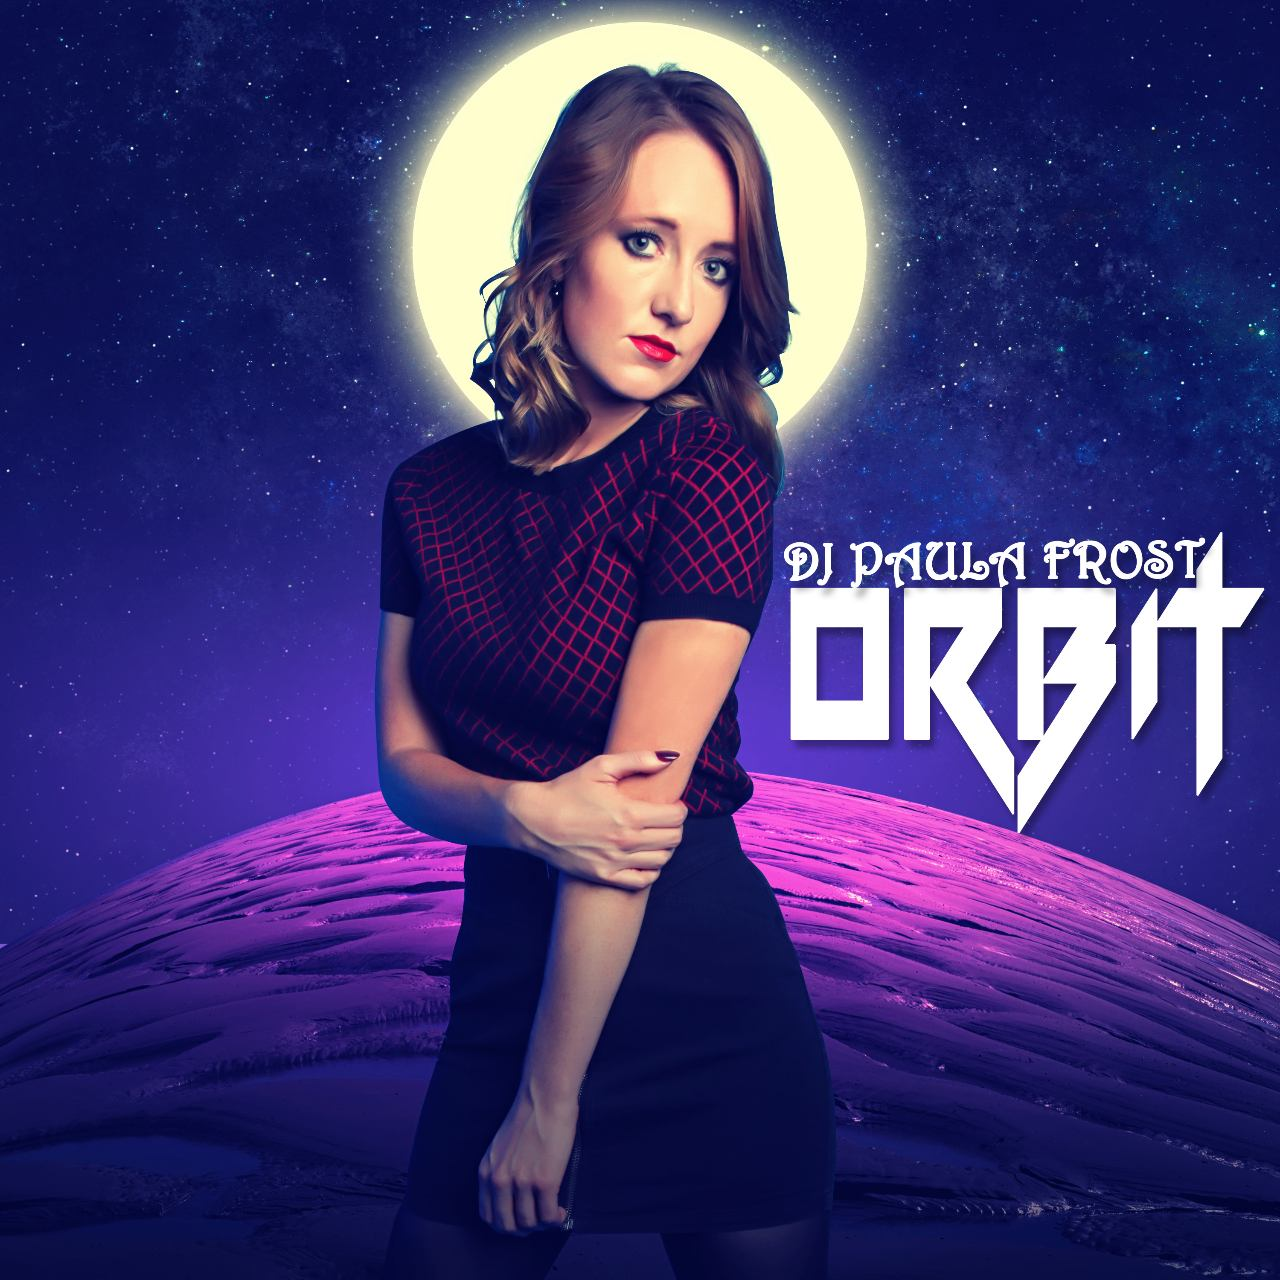 orbit-single-cover-art-web